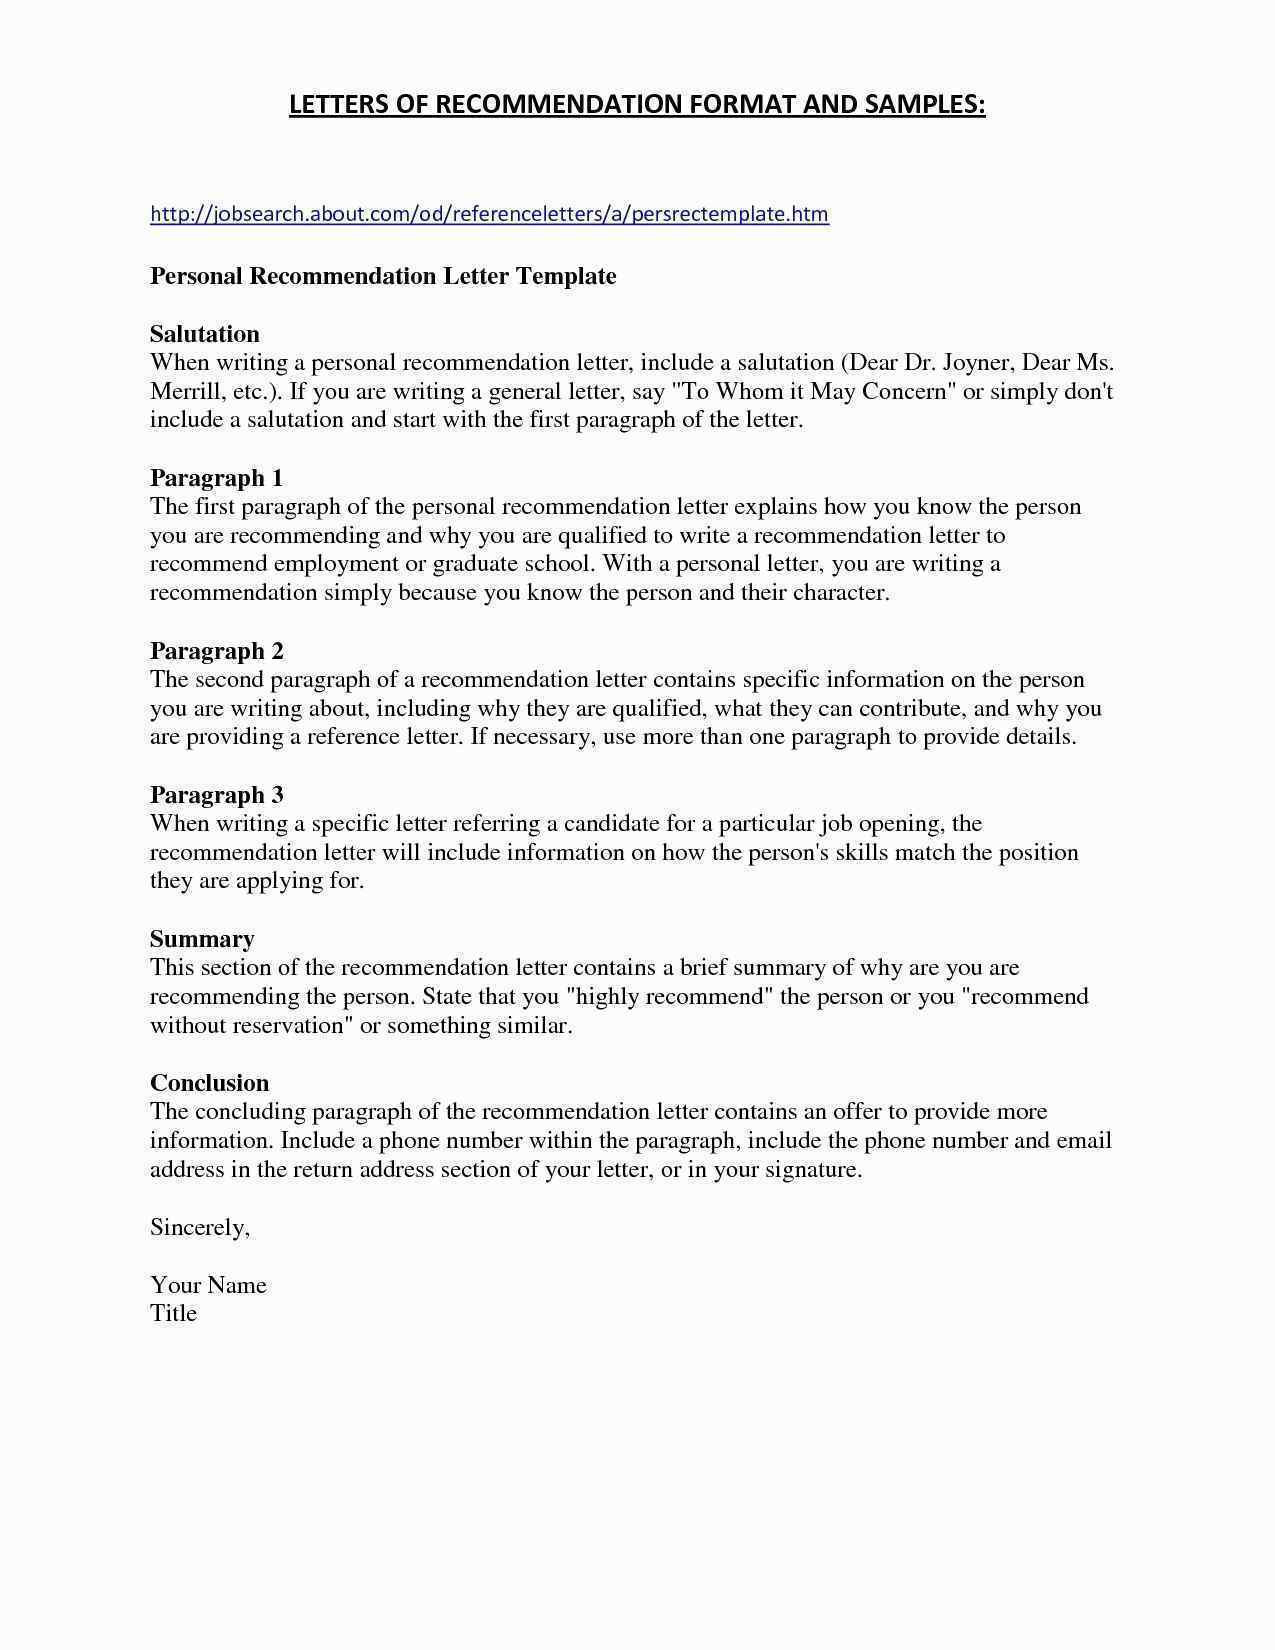 Personal Summary Resume - Personal Summary Resume Examples – Legacylendinggroup